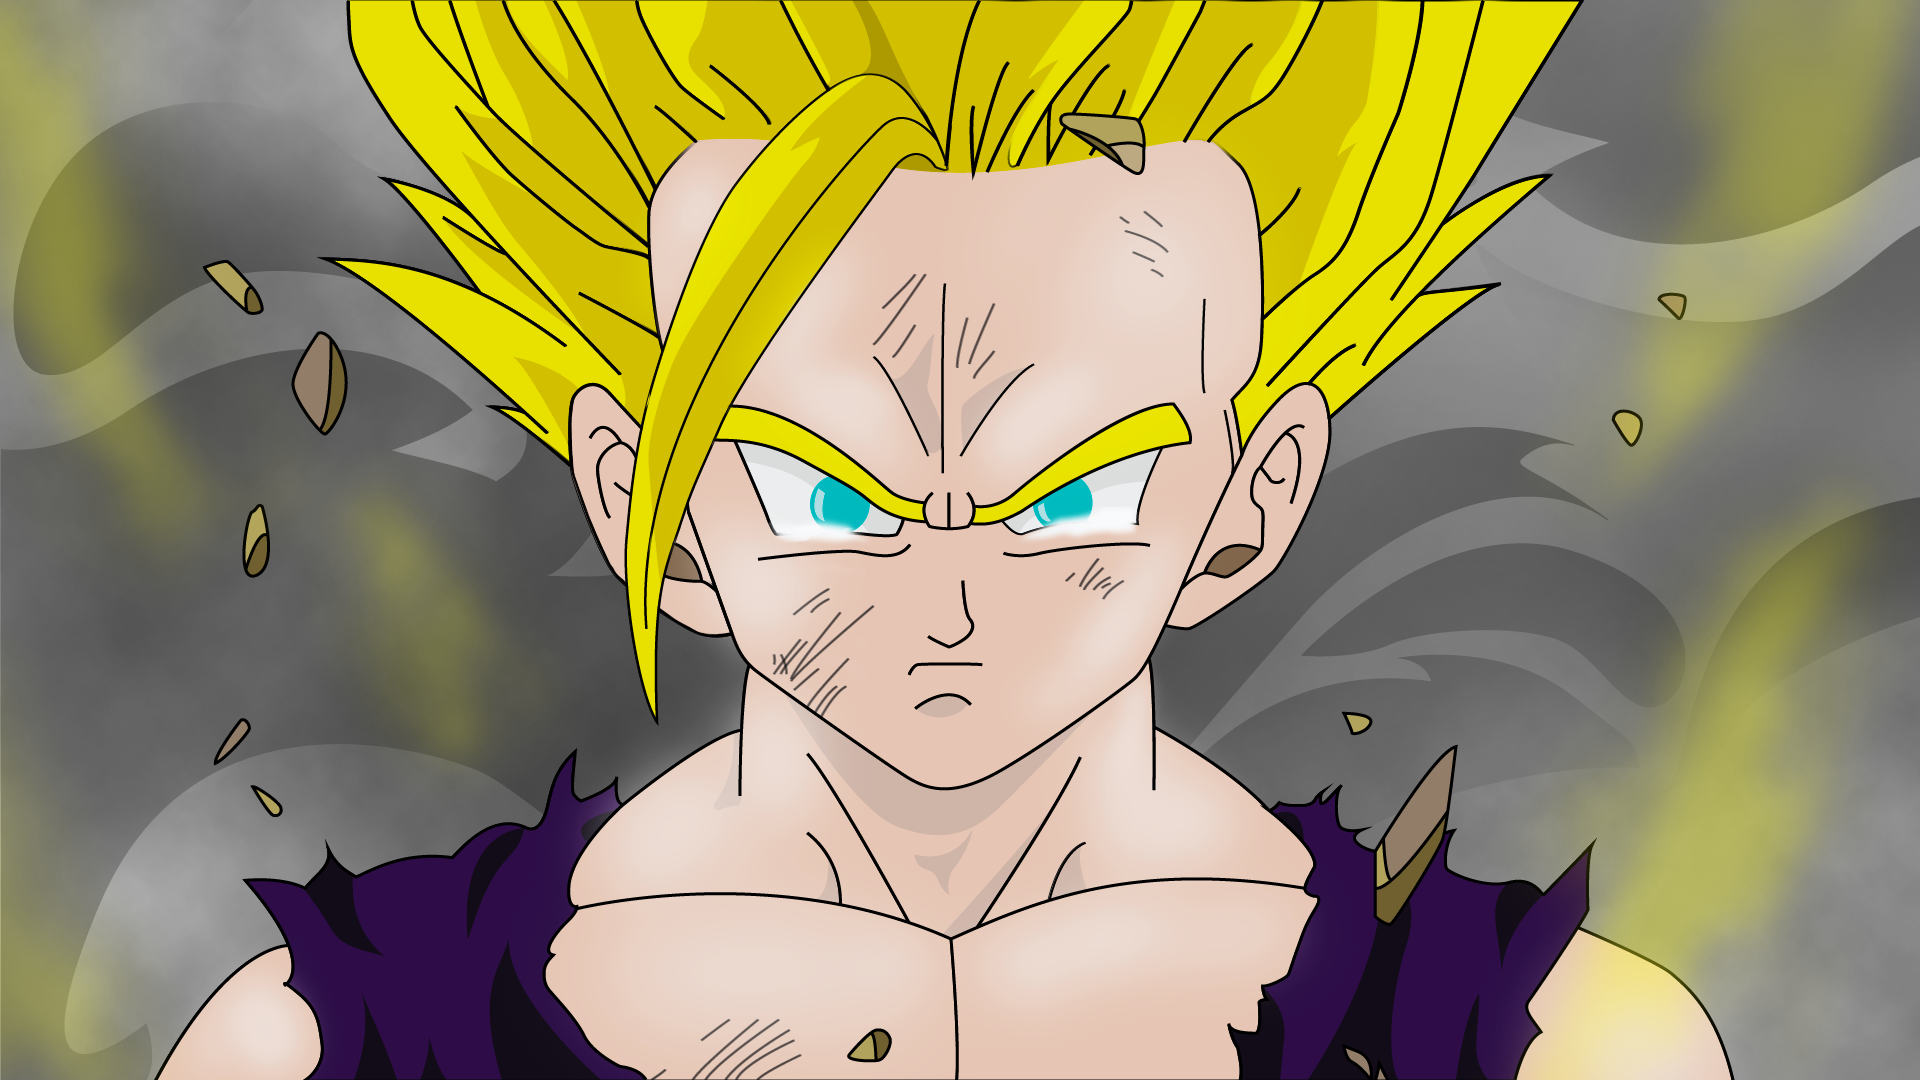 Gohan Super Saiyan 2 Wallpaper By Nickz95 On Deviantart